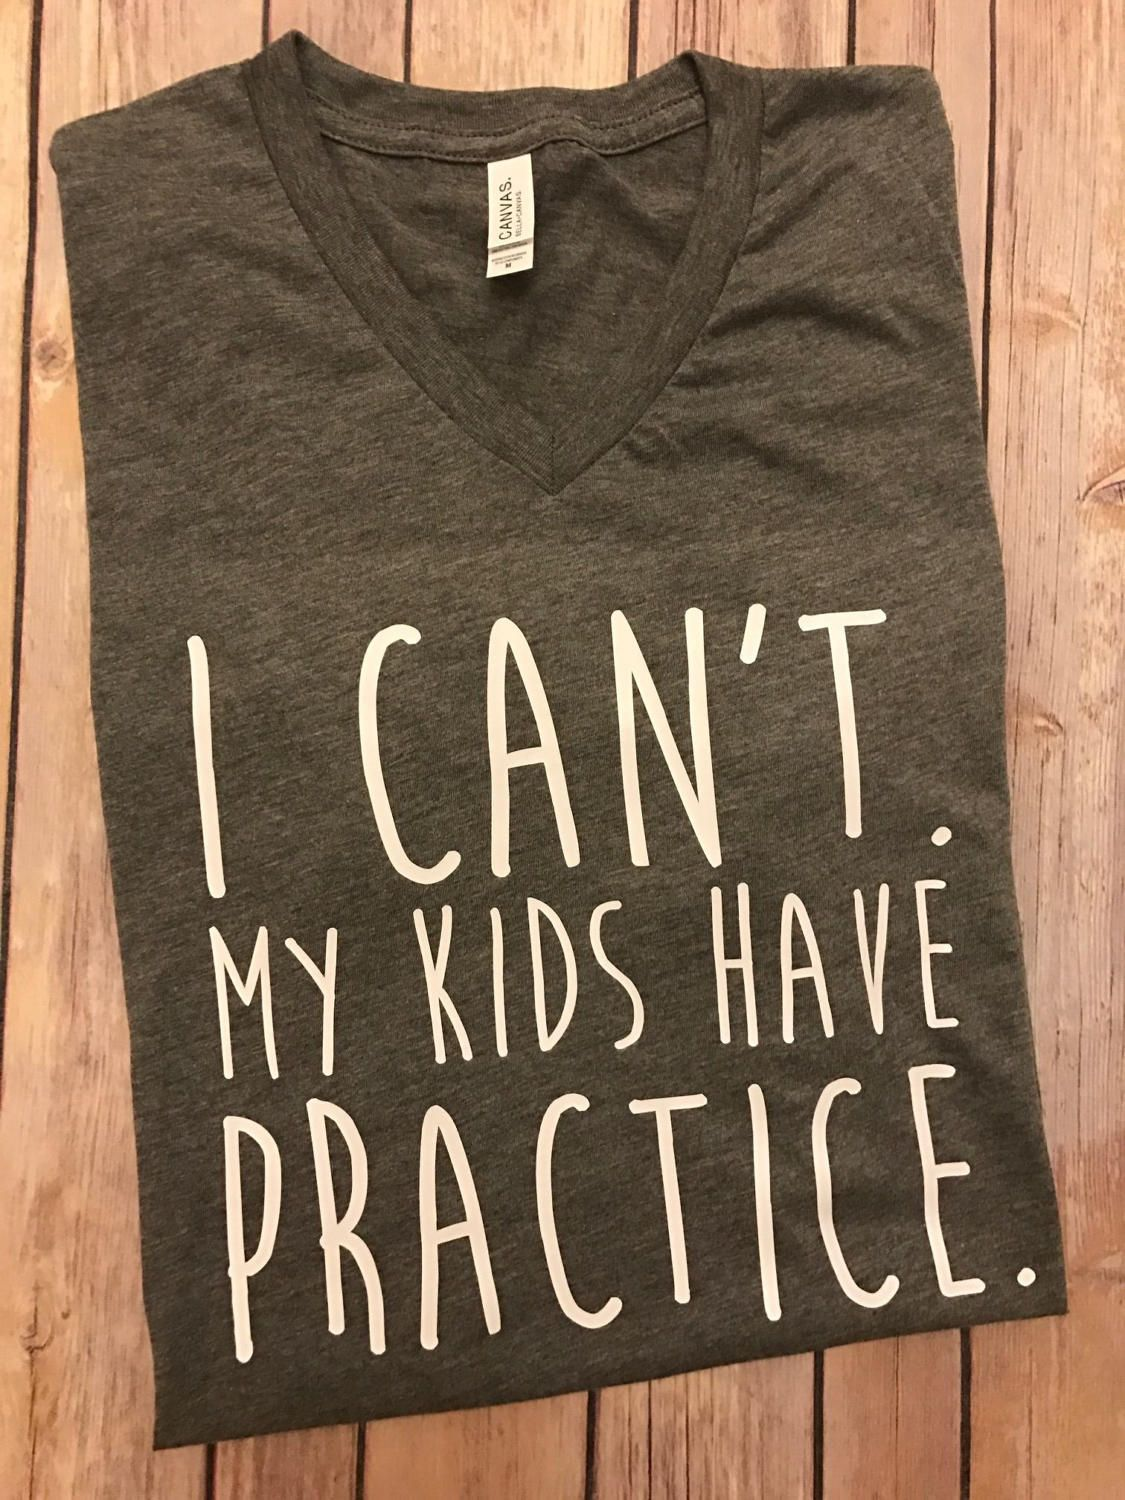 I Can't My Kids Have Practice shirt by The601store on Etsy